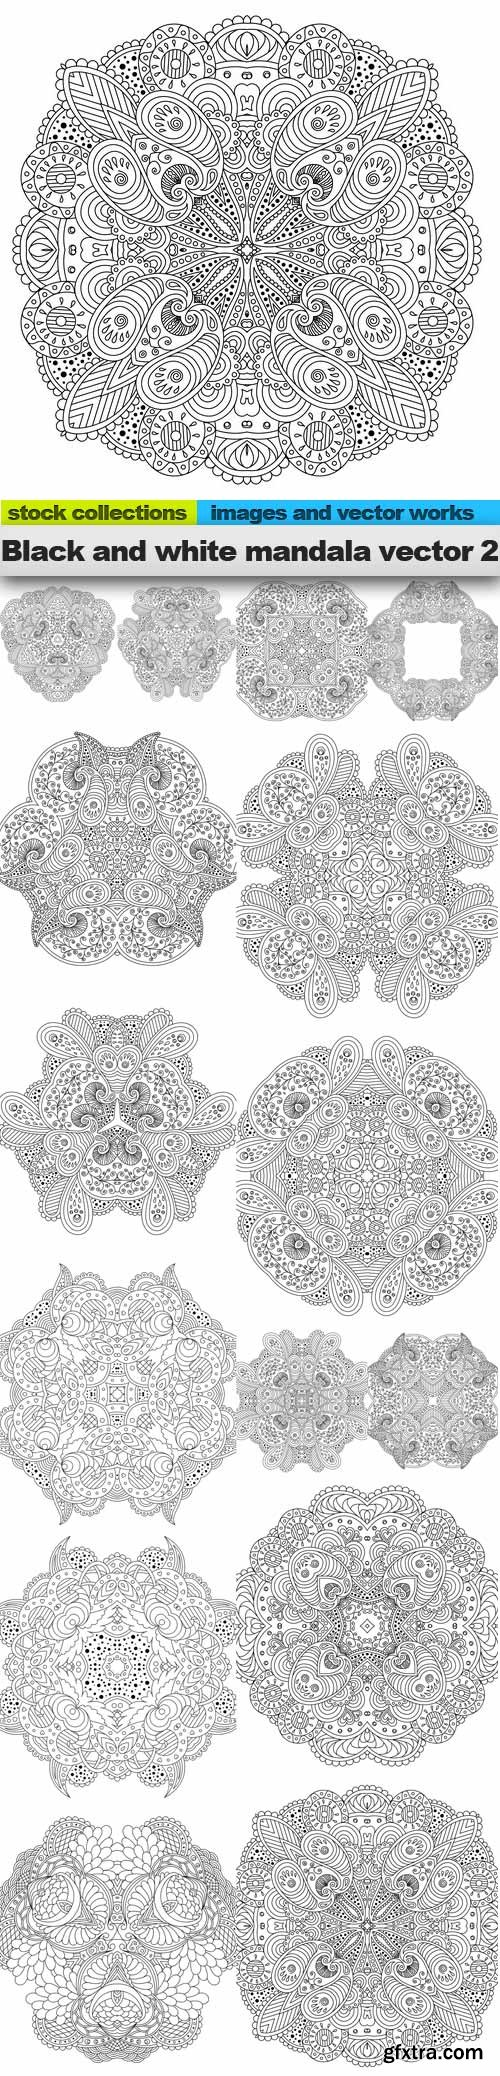 Black and white mandala vector 2, 15 x EPS